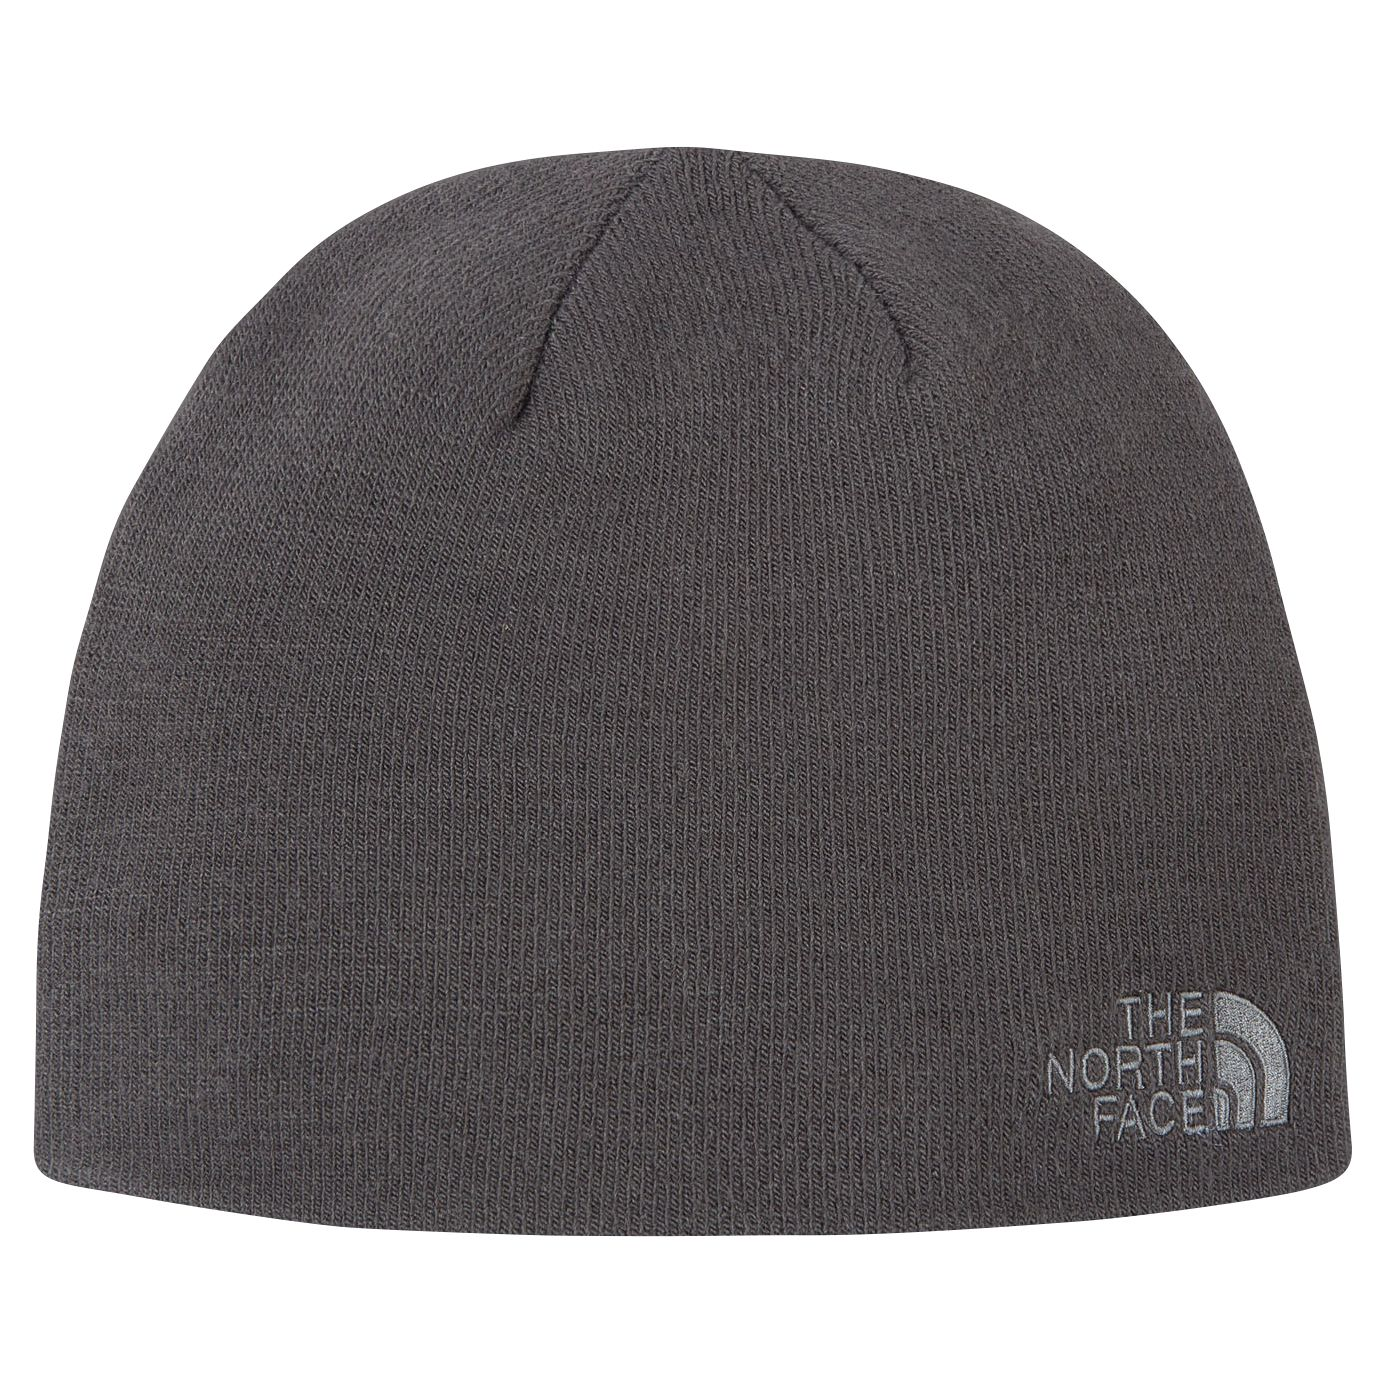 1caac3a79 The North Face Gateway Beanie, One Size, Grey at John Lewis & Partners